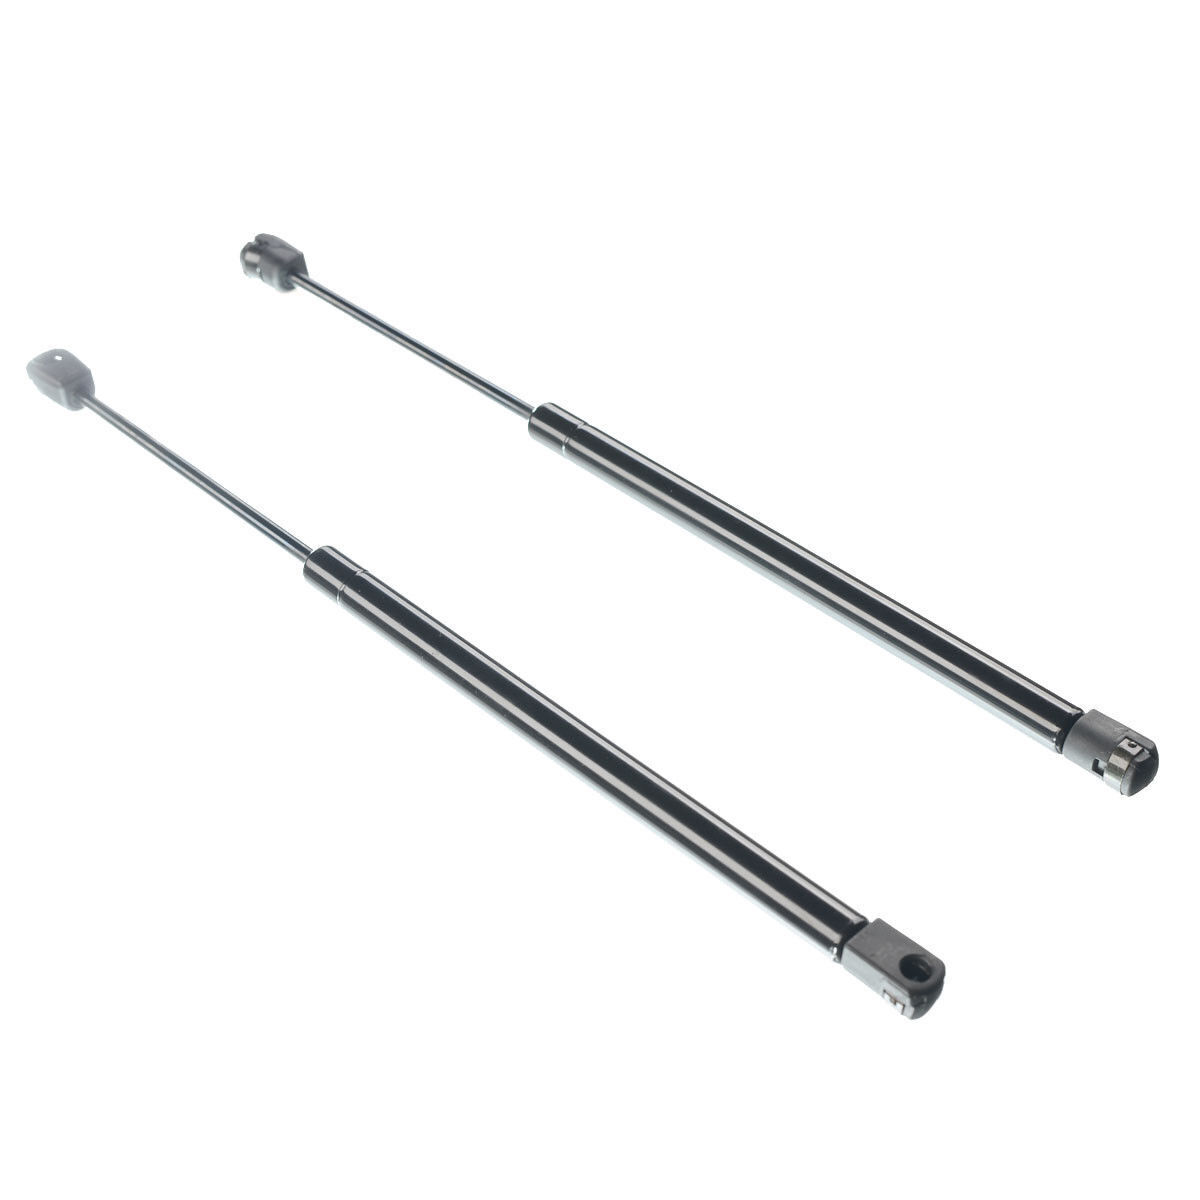 2 Pcs Front Hood Lift Support Shocks Struts For Ford F 150